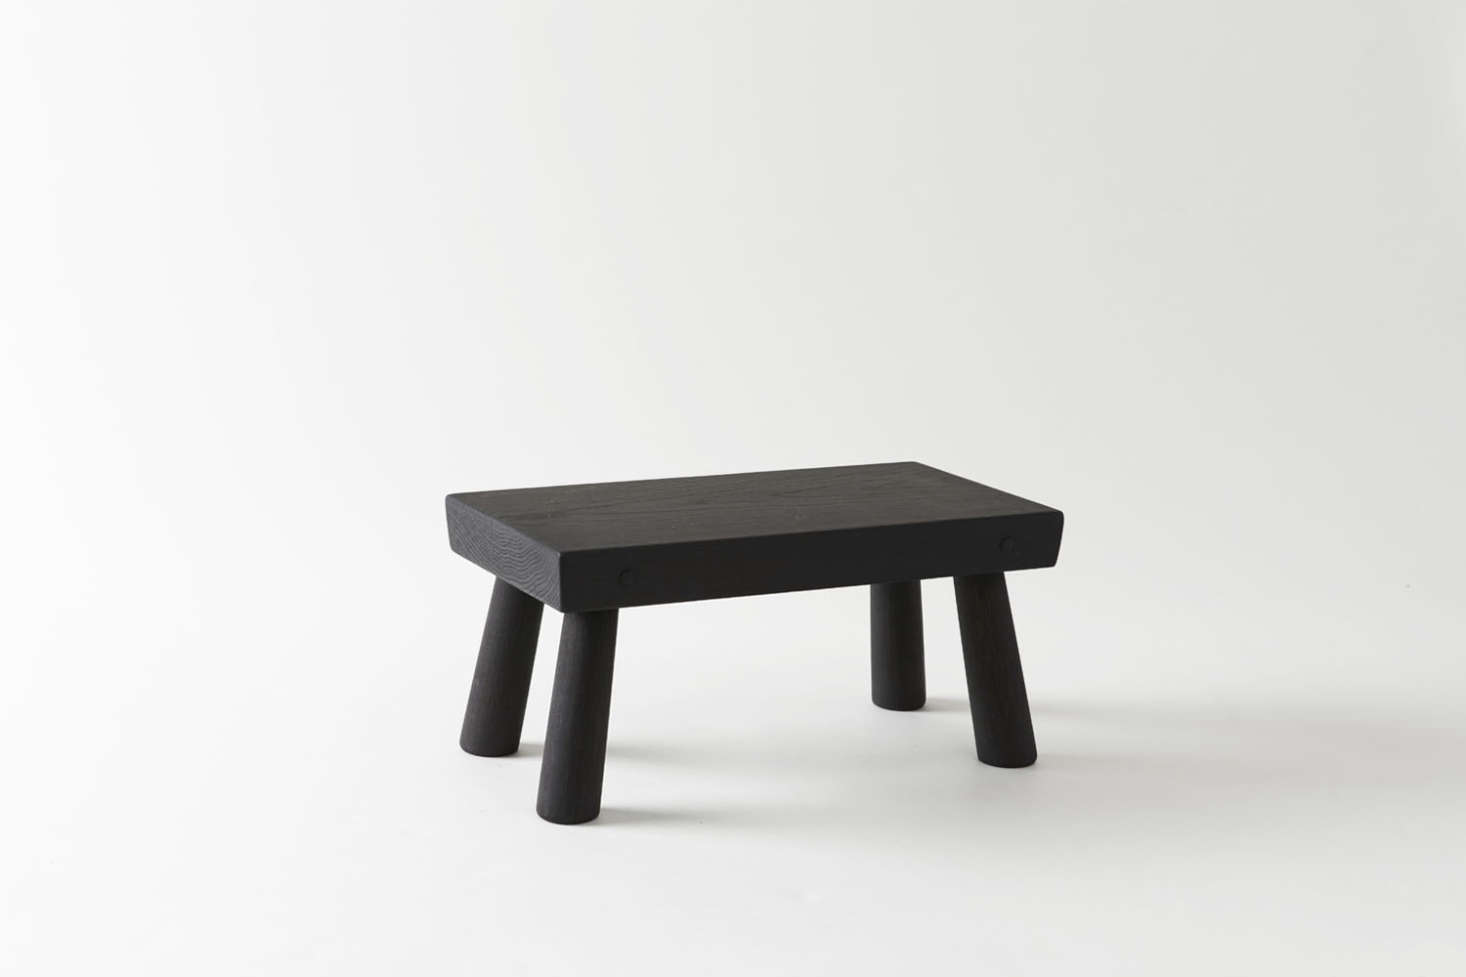 Available through MARCH, the Blackcreek Mercantile & Trading Co. Step Stool is a short step up (7.5 inches) and is available in six different finishes of white oak for $460. For more than one kid, the Blackcreek Mercantile & Trading Co. Long Step Stool is over twice the length; $785.